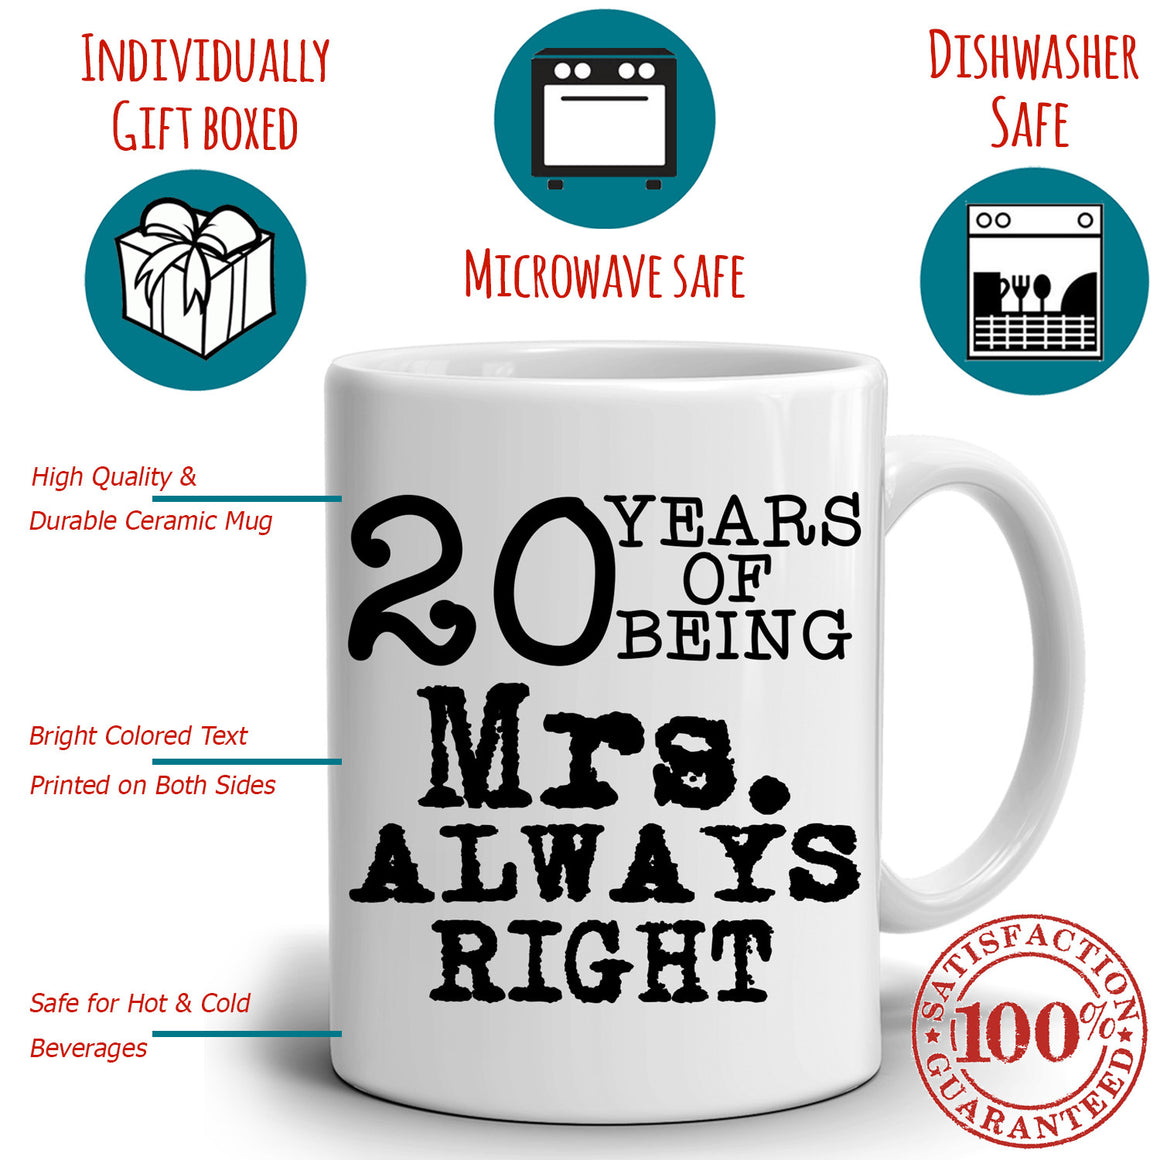 Personalized Number of Years Wedding Anniversary Couples Gift Coffee Mug, Romantic Present for Husband and Wife This Valentines Day, Printed on Both Sides! 2-Sets